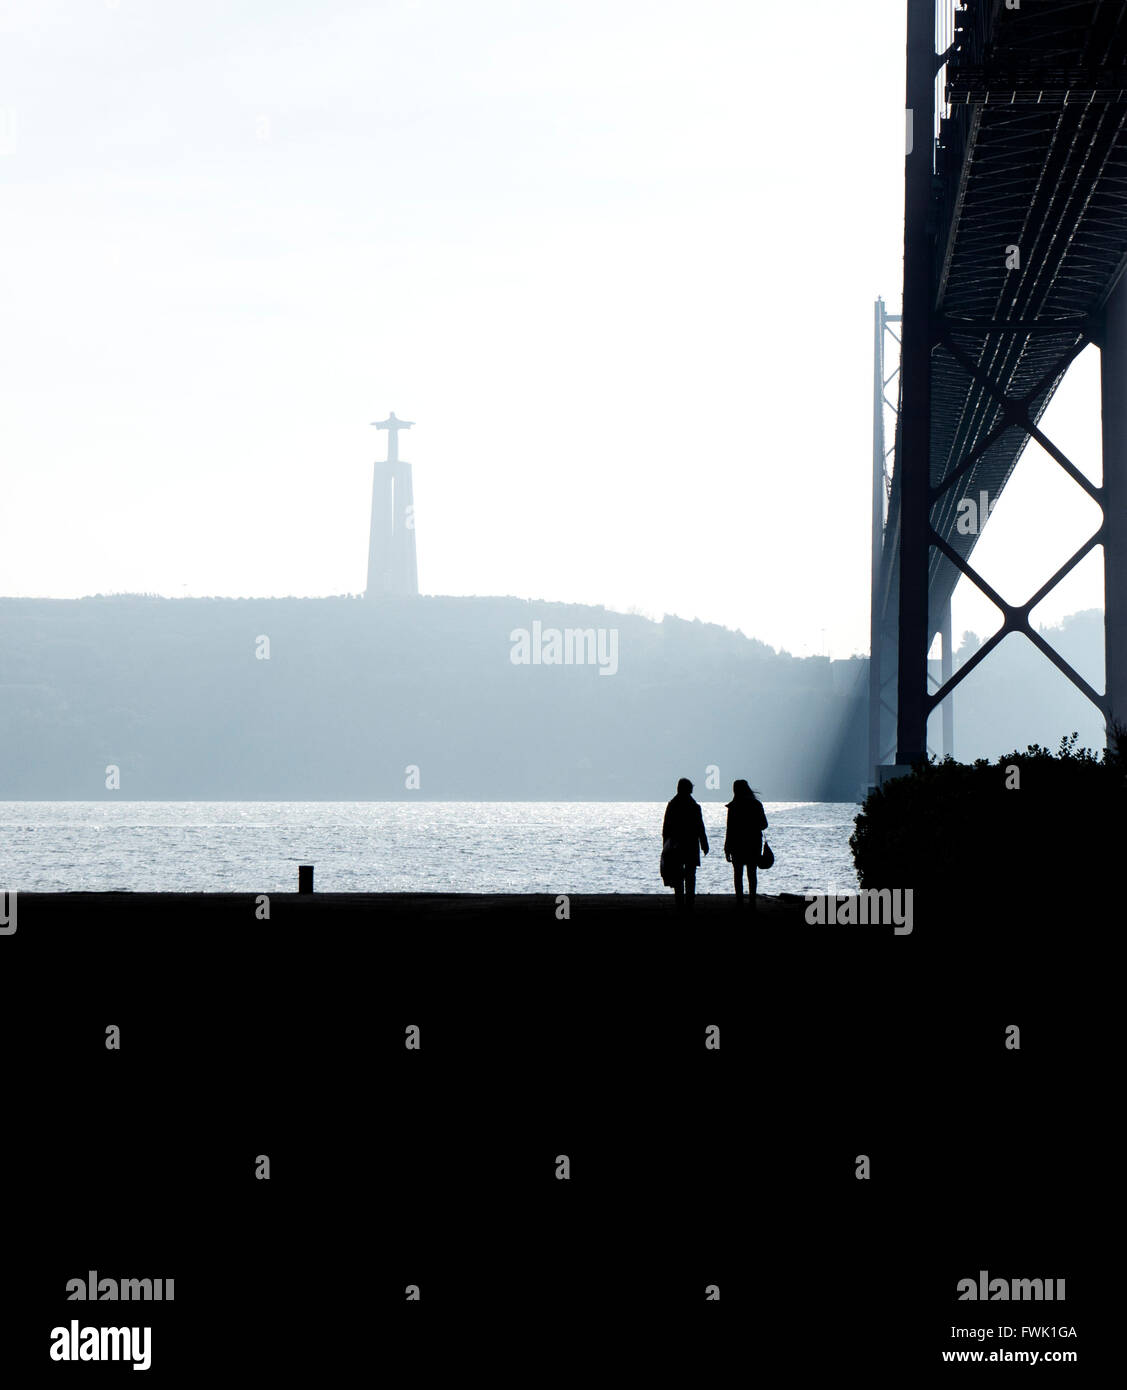 Friends Walking At Riverbank By April 25Th Bridge Against Christ The King Statue - Stock Image